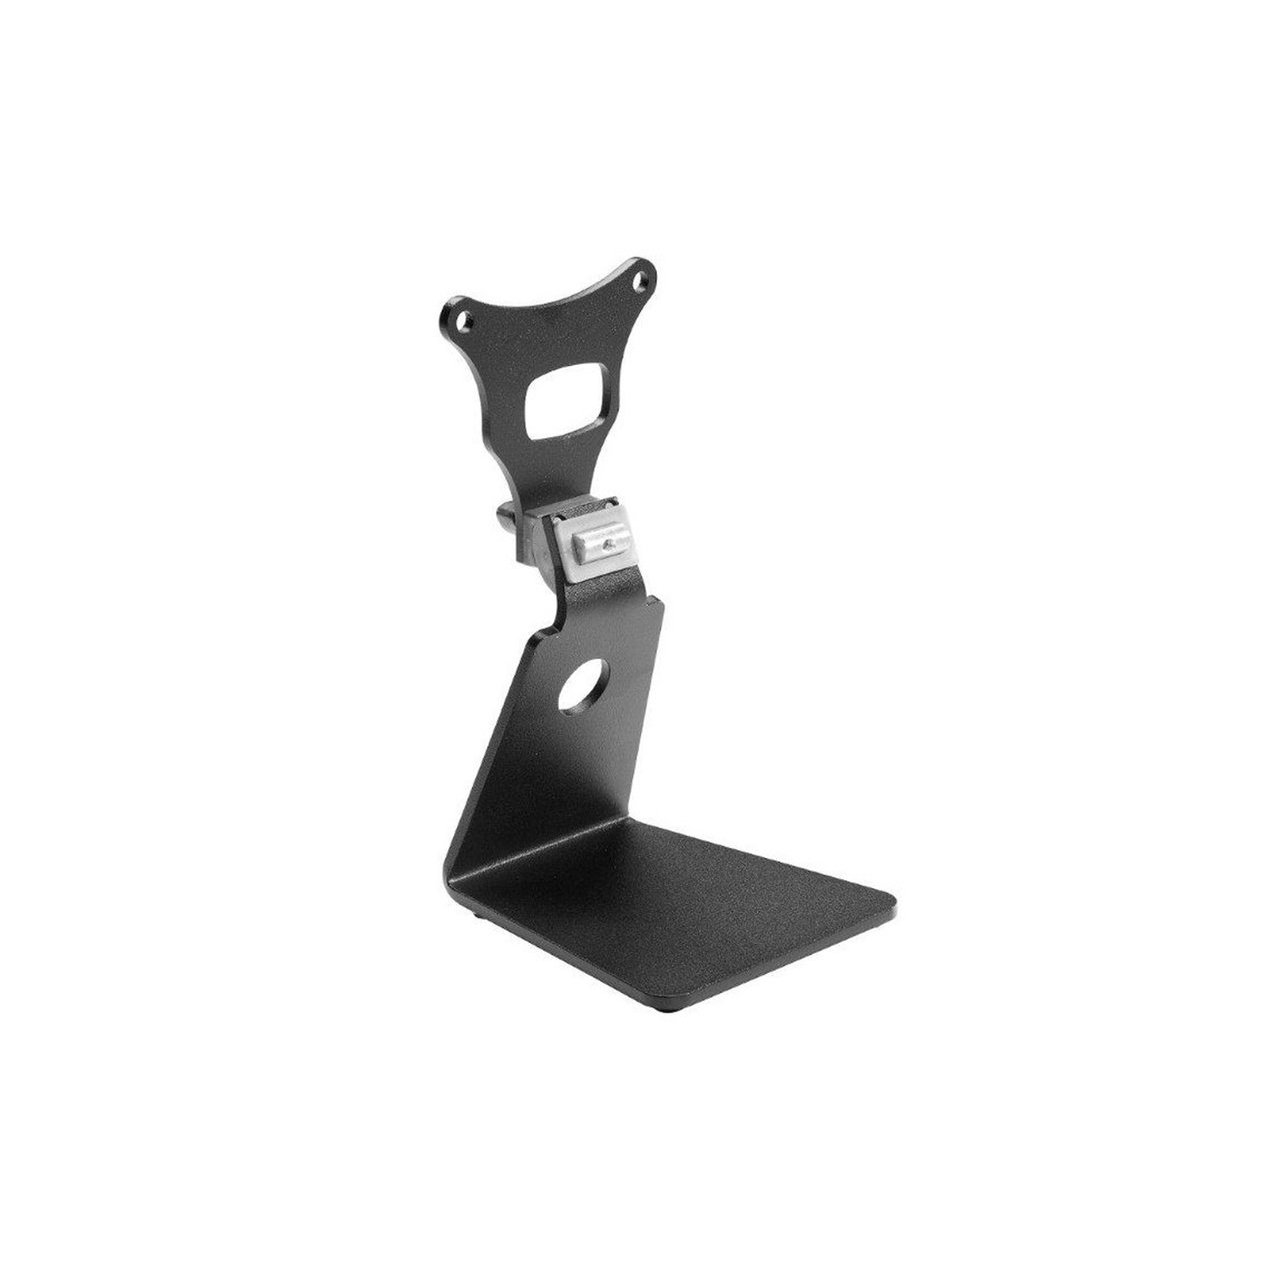 Genelec 8010-320 L-shape Table Stand for 8010 (SINGLE)